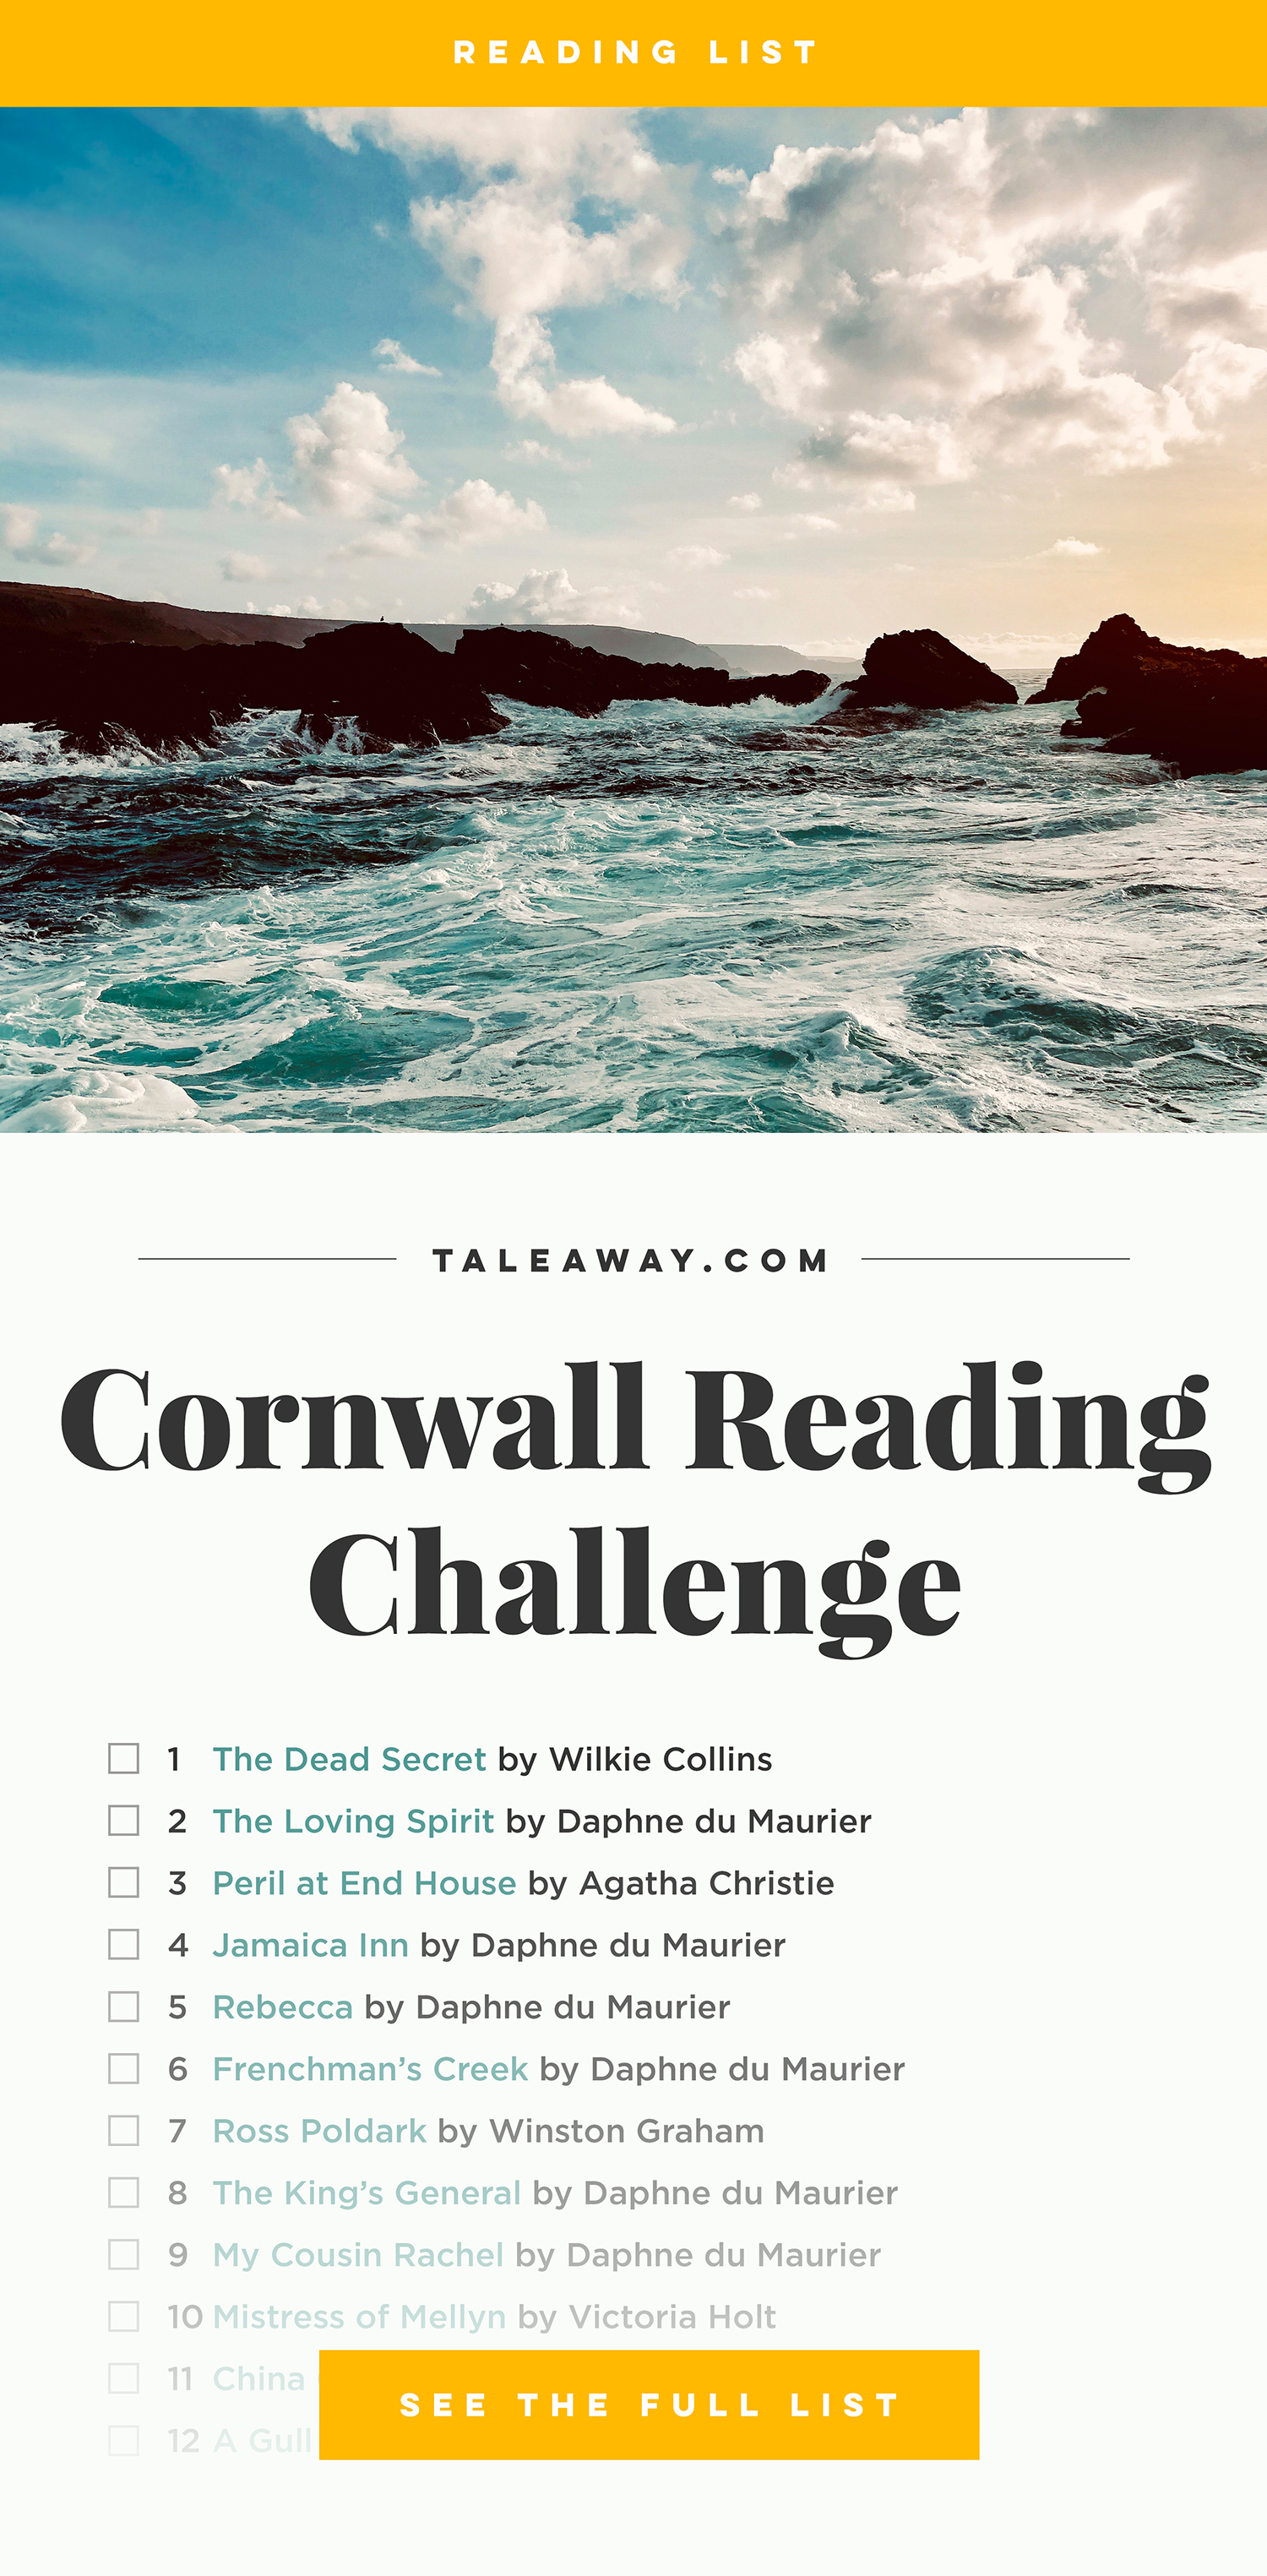 Books Set in Cornwall. Visit www.taleway.com to find books from around the world. cornwall books, cornish books, cornwall novels, cornwall literature, cornish literature, cornwall fiction, cornish fiction, cornish authors, best books set in cornwall, popular books set in cornwall, books about cornwall, cornwall reading challenge, cornwall reading list, cornwall books to read, books to read before going to cornwall, novels set in cornwall, books to read about cornwall, cornwall packing list, cornwall travel, cornwall history, cornwall travel books